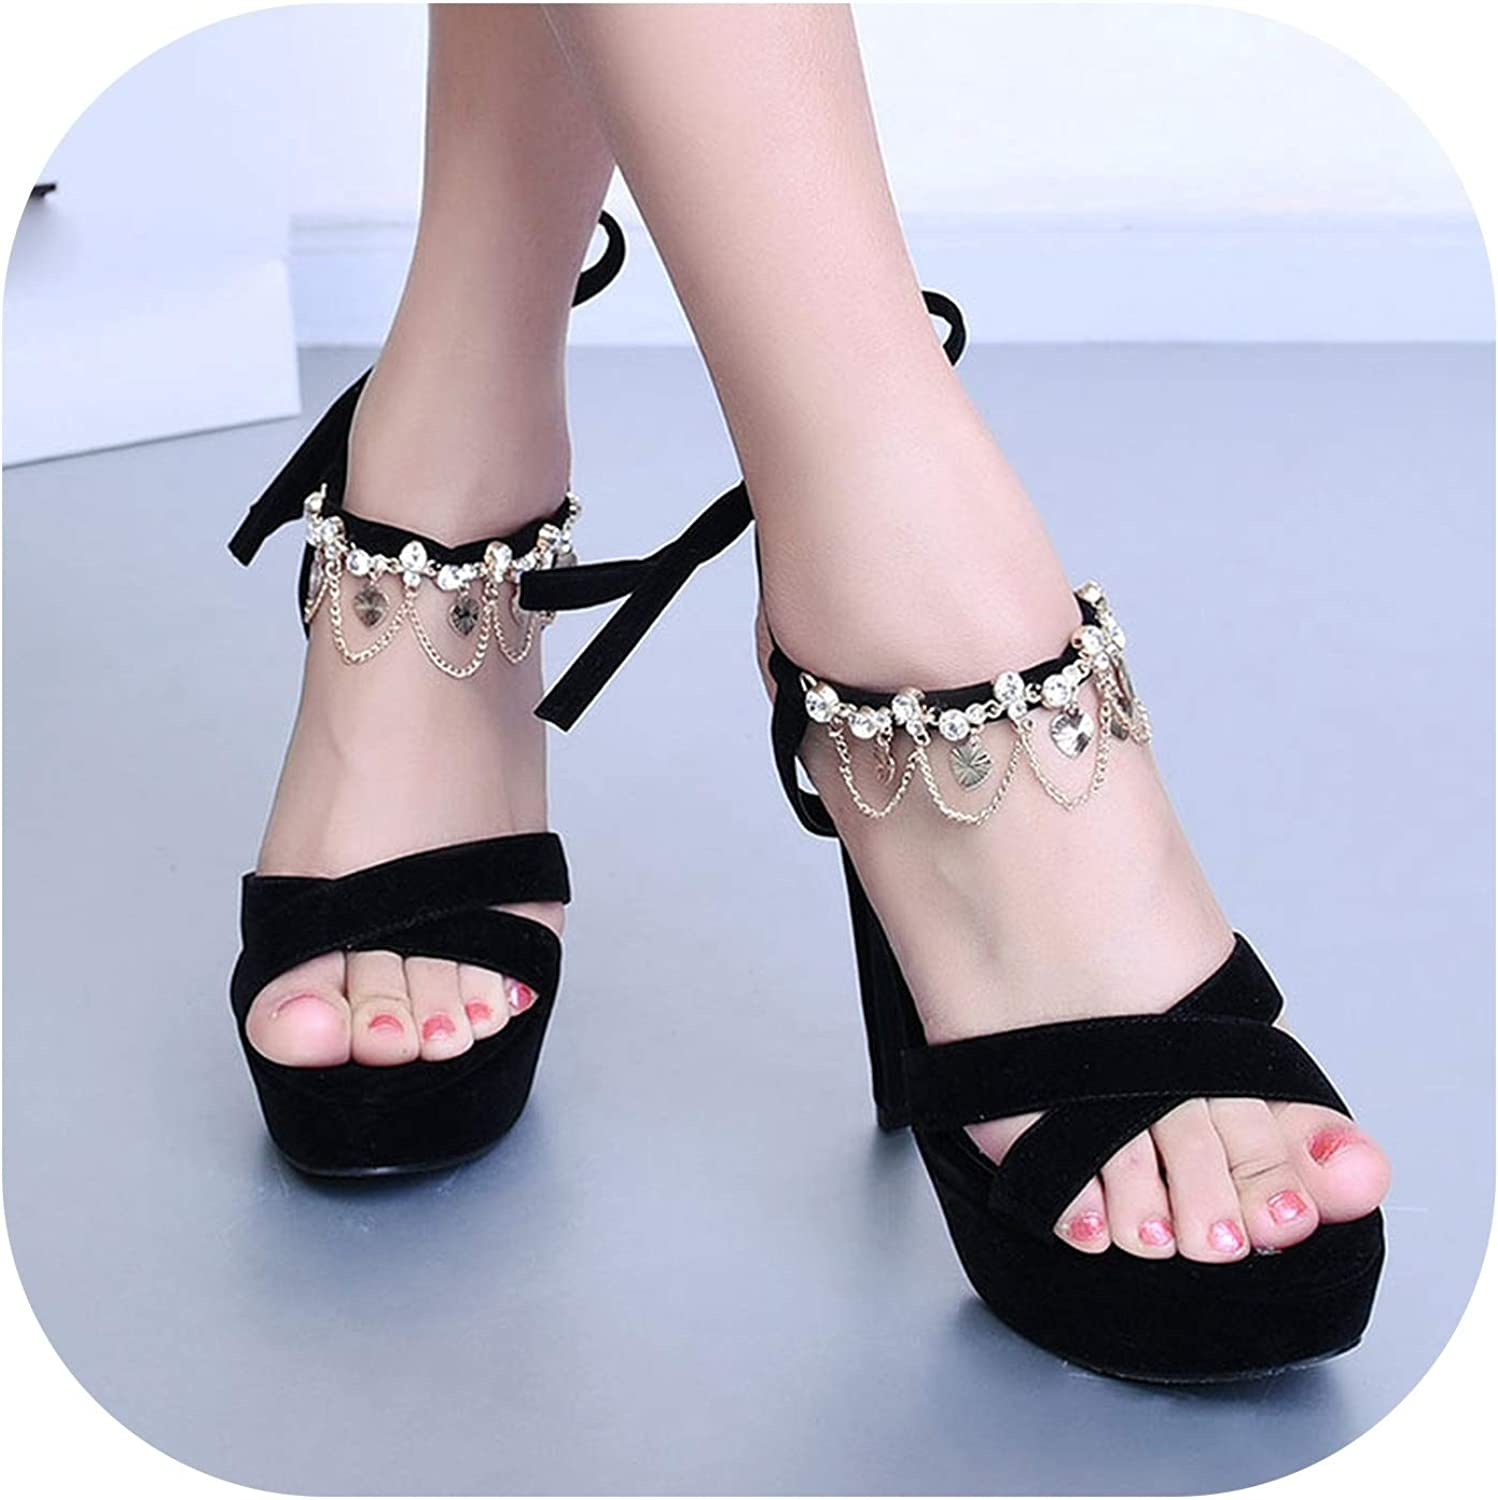 Sexy Women shoes Open Toe Lace up Heels Sandals Woman Sandals Thin Heels shoes